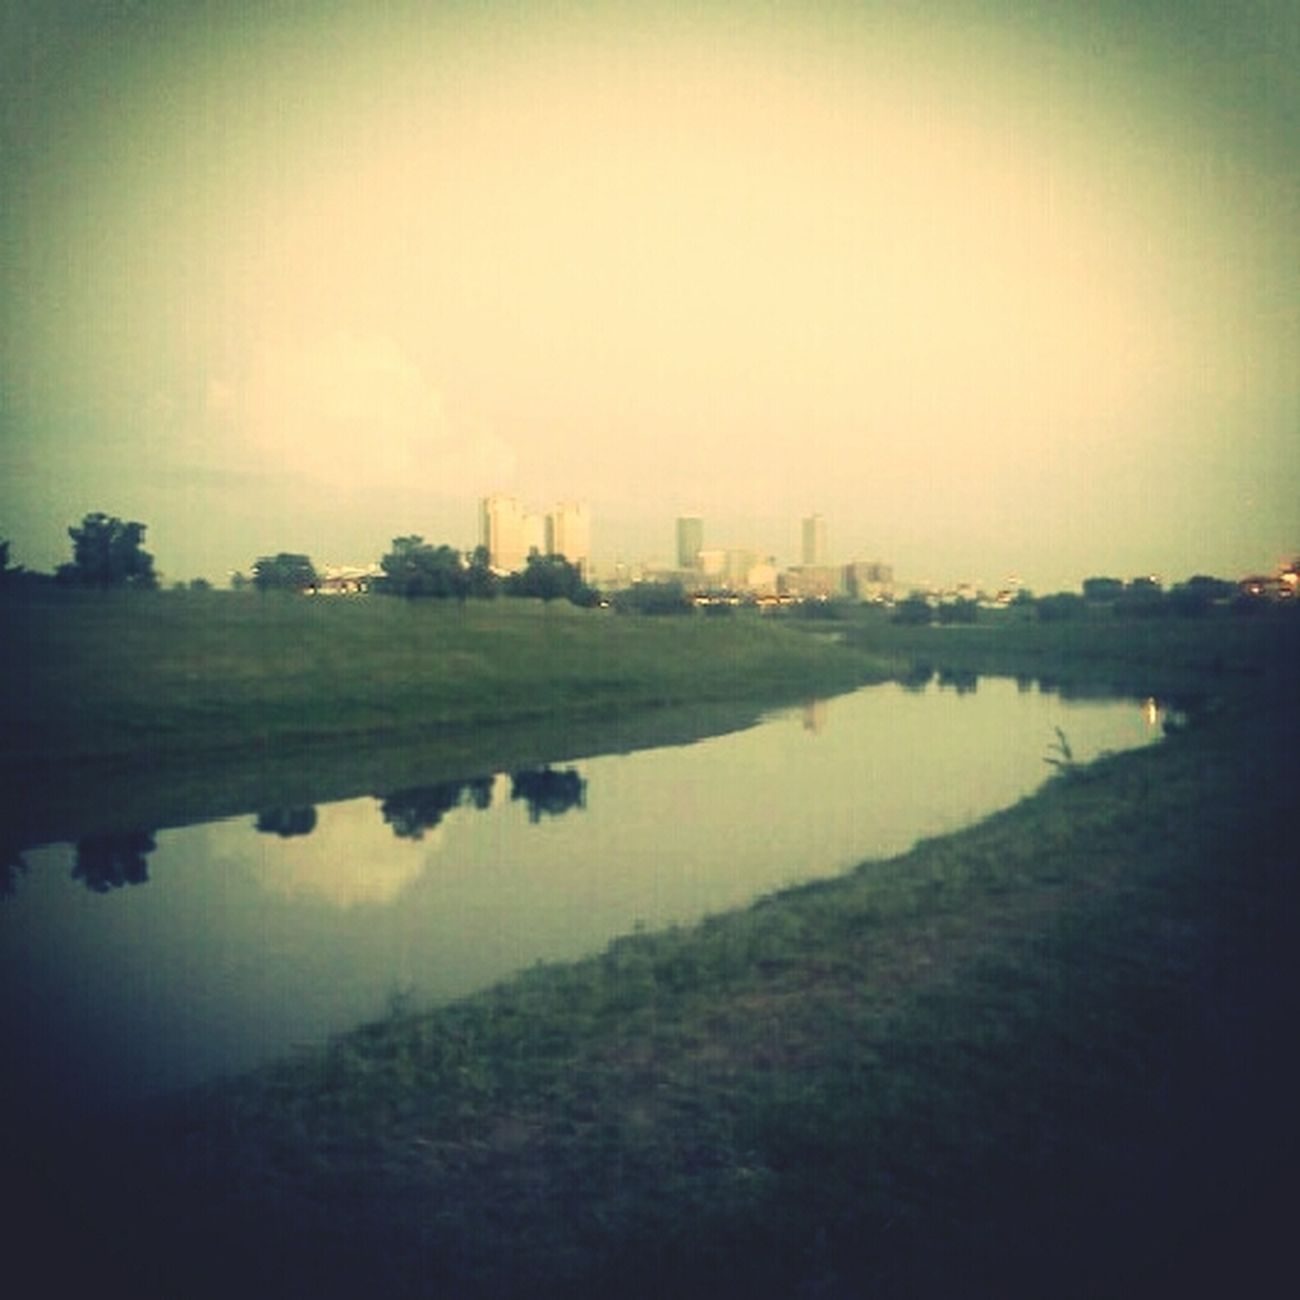 #TrinityRiver #Downtown #Walk